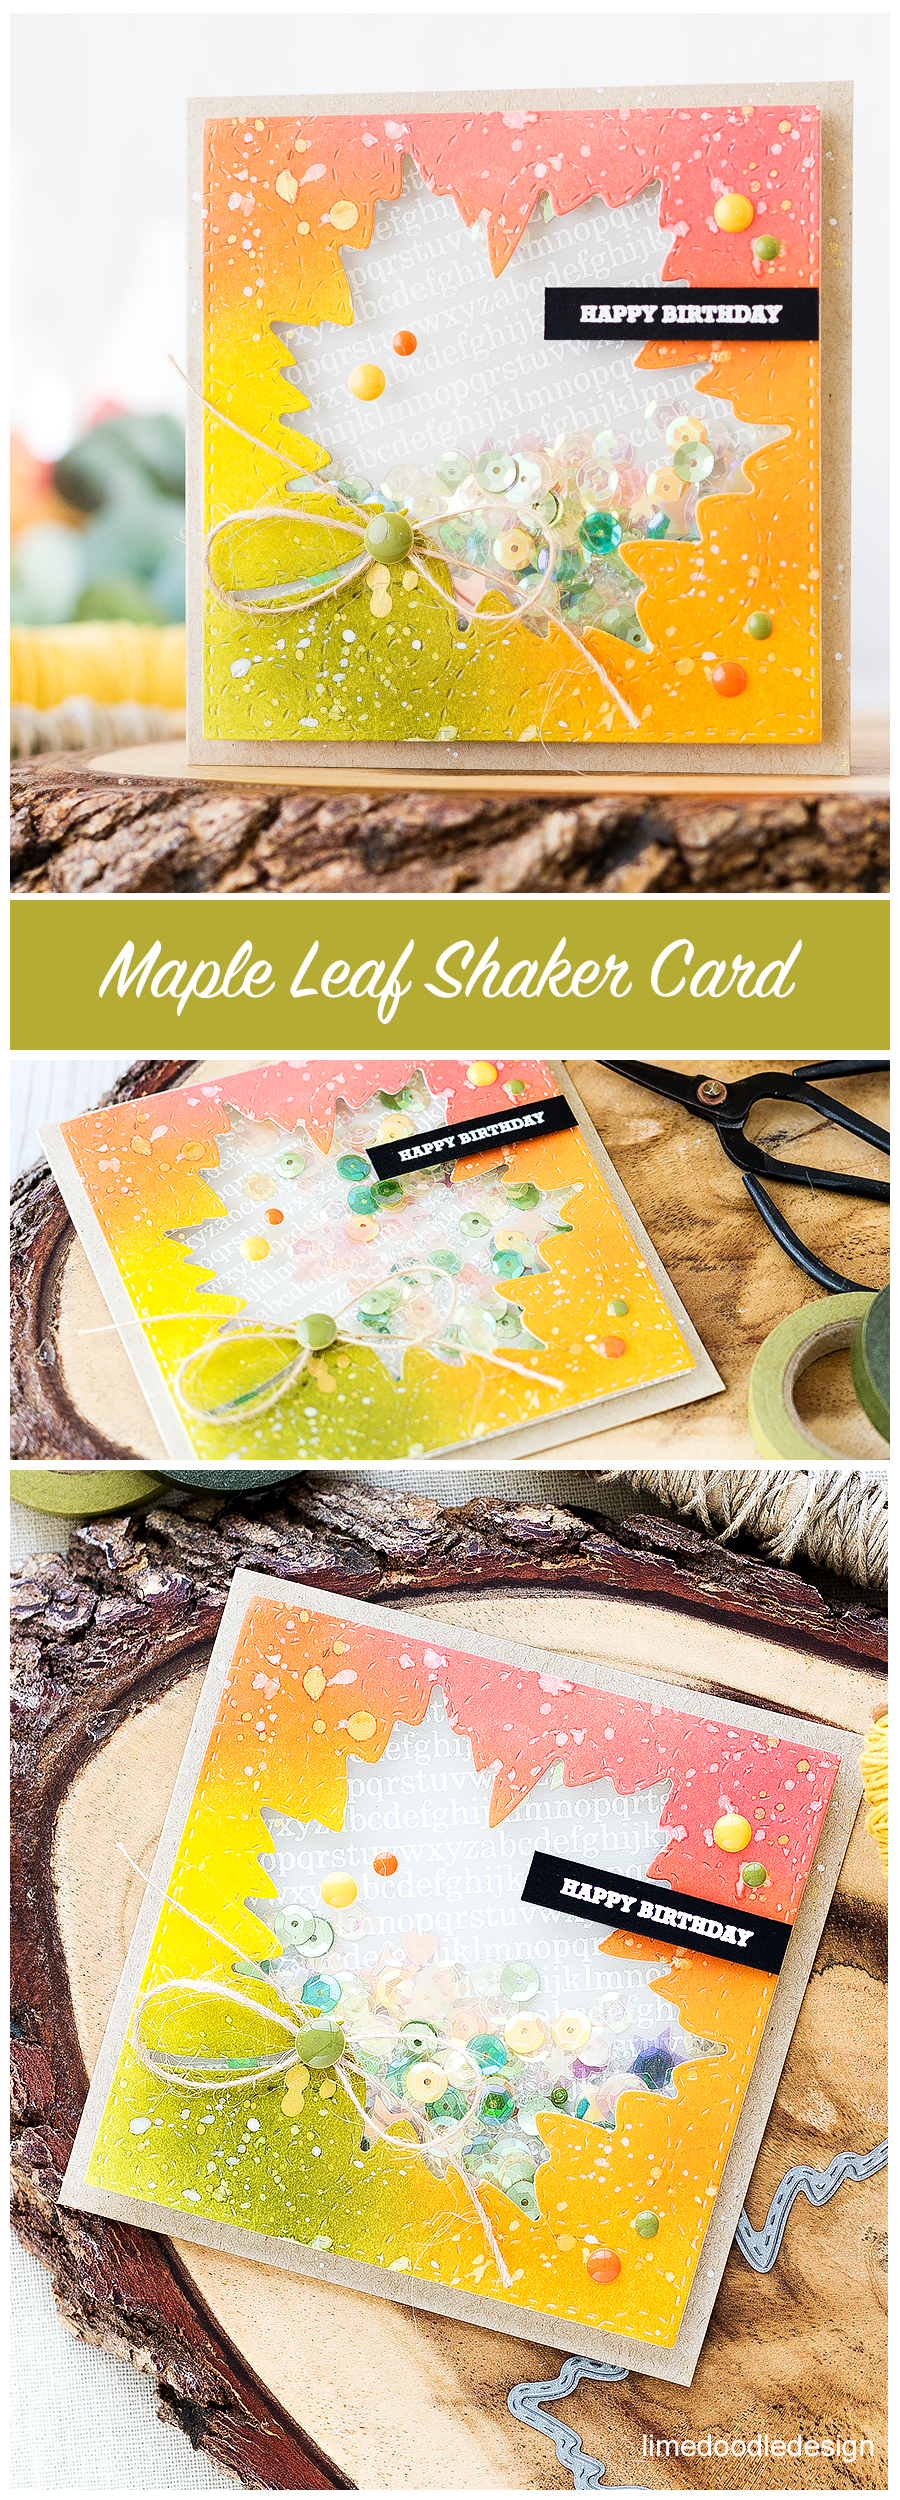 Maple Leaf Autumn Shaker Card. Find out more by clicking the following link: https://limedoodledesign.com/2016/08/maple-leaf-autumn-shaker-card/